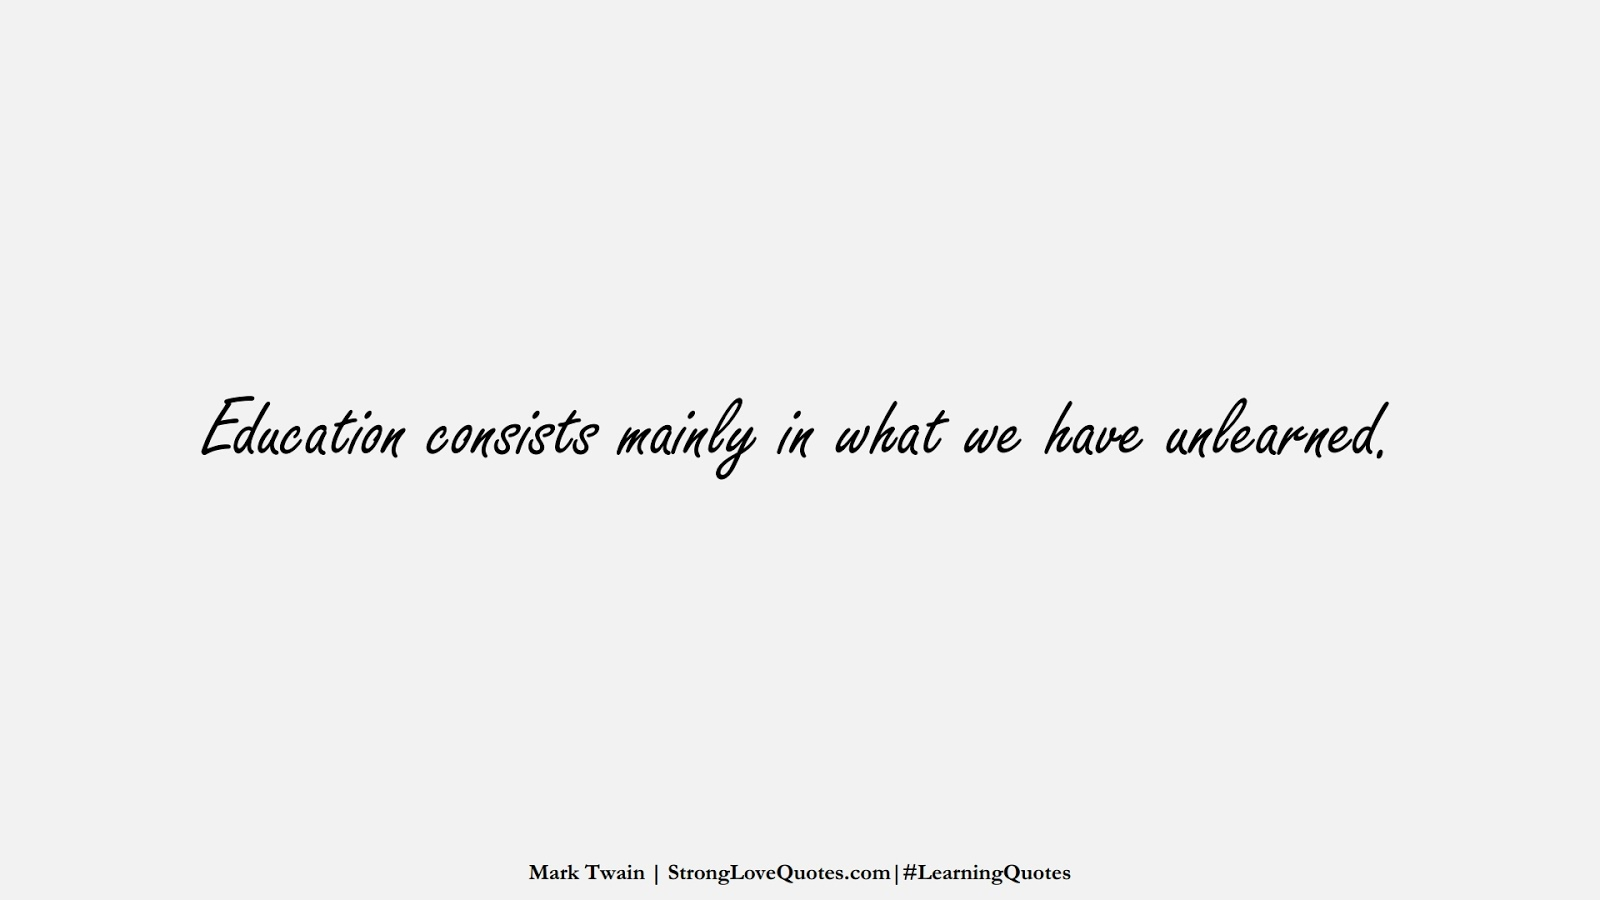 Education consists mainly in what we have unlearned. (Mark Twain);  #LearningQuotes